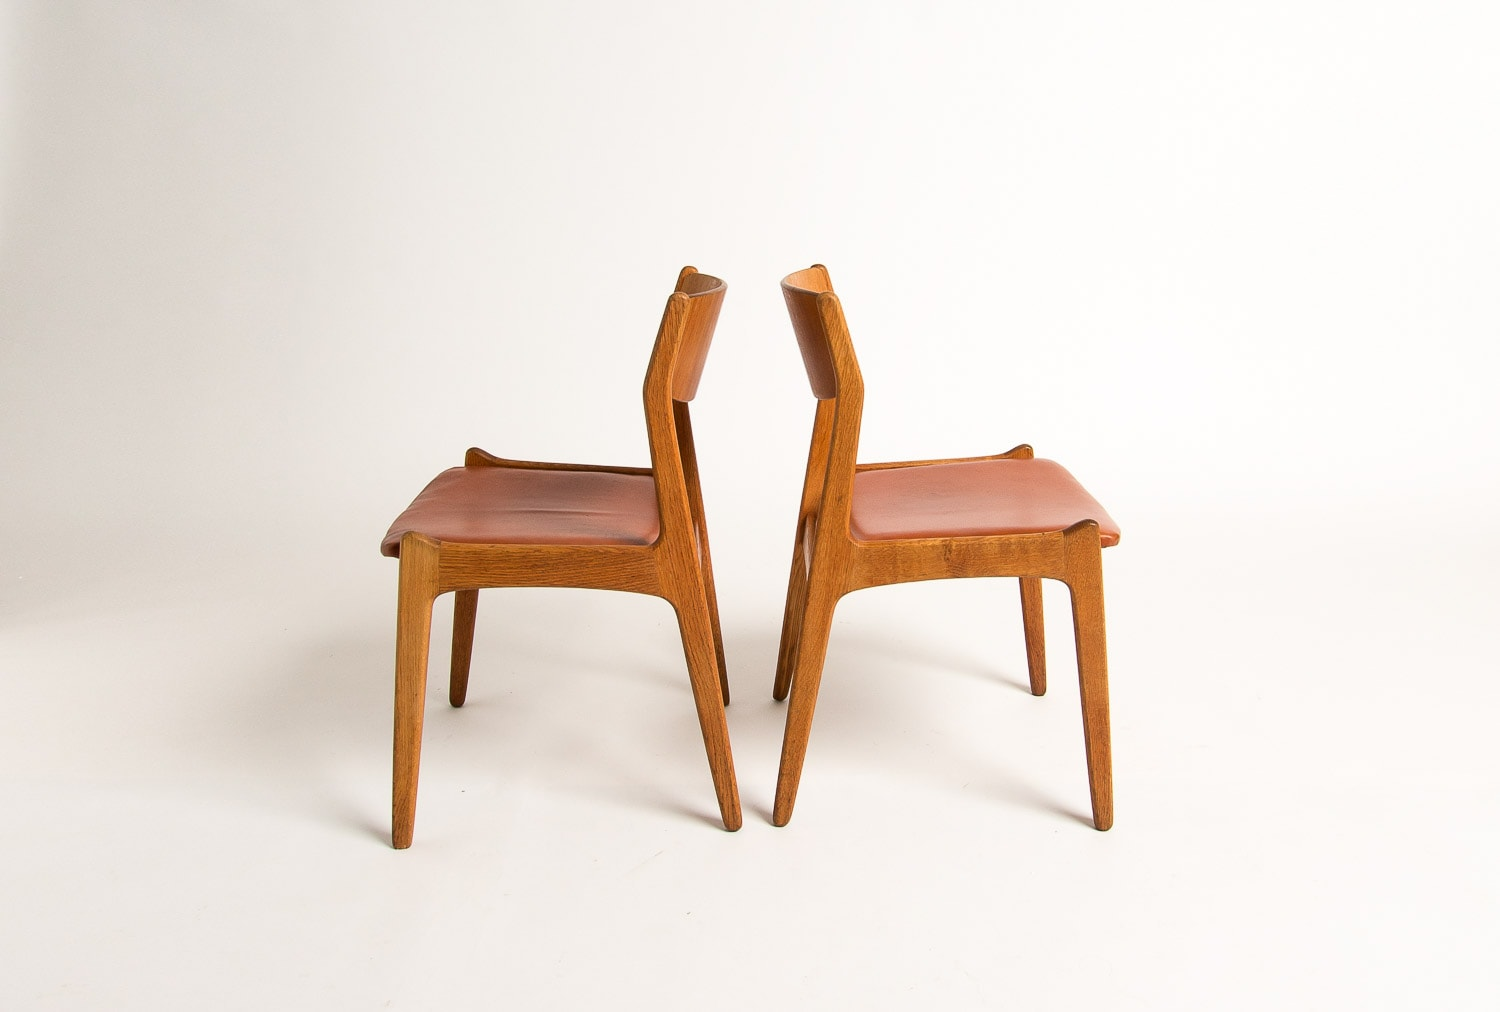 Mid century dining chairs Danish leather oak 1950's